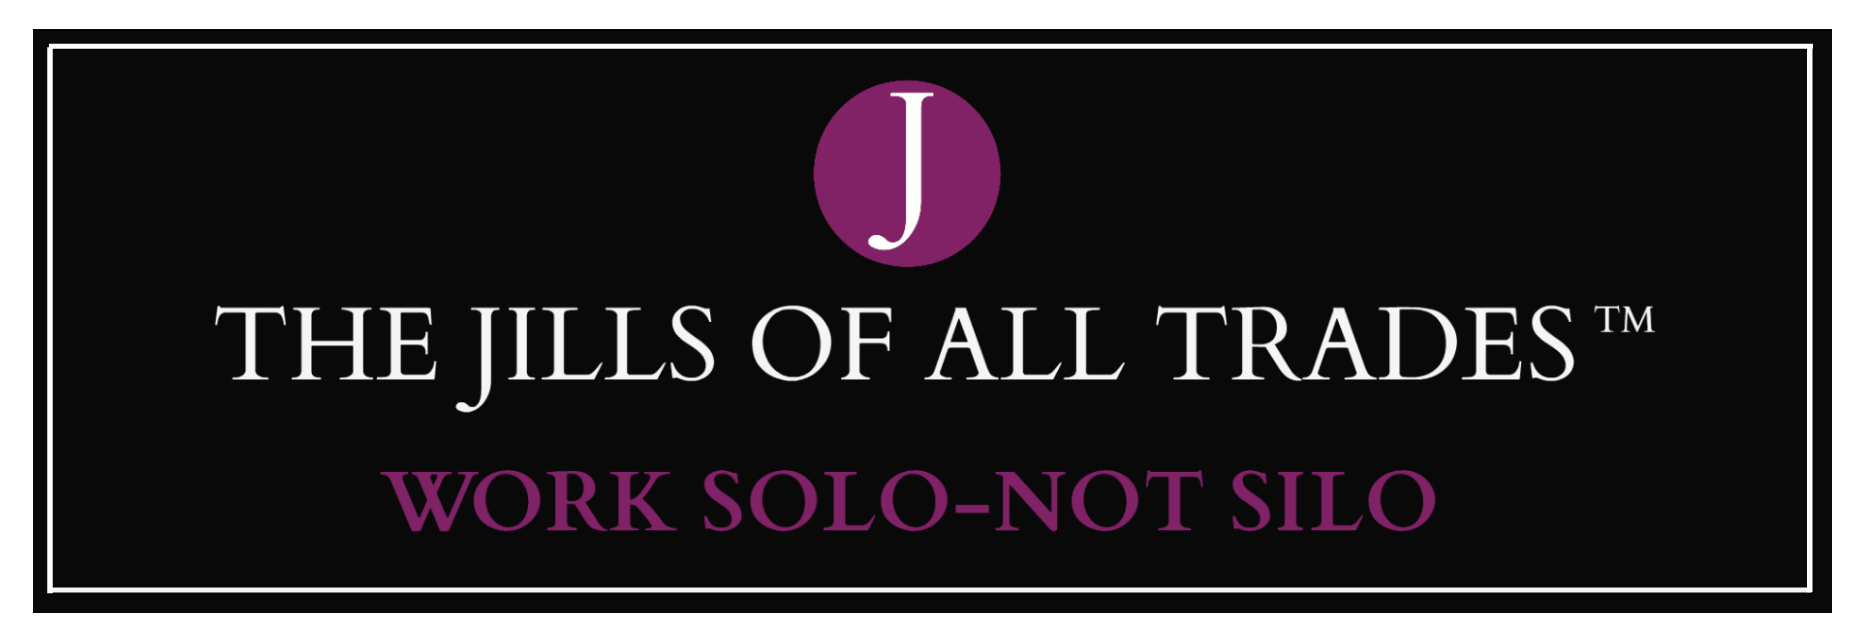 THE JILLS OF ALL TRADES™- THE JILLS OF ALL TRADES™ is a powerhouse talent collective of Freelancers, Consultants, Independent Contractors & Solopreneurs.  Our platform AGGREGATES solo professionals, who are often fragmented and hard to find, to gain bolder & bigger marketing exposure.  We CENTRALIZE relevant resources, tips, & tools to make it easier & faster for solos to run their businesses.  By creating a community of gig economy peers, we SOCIALIZE an all too isolating work style.